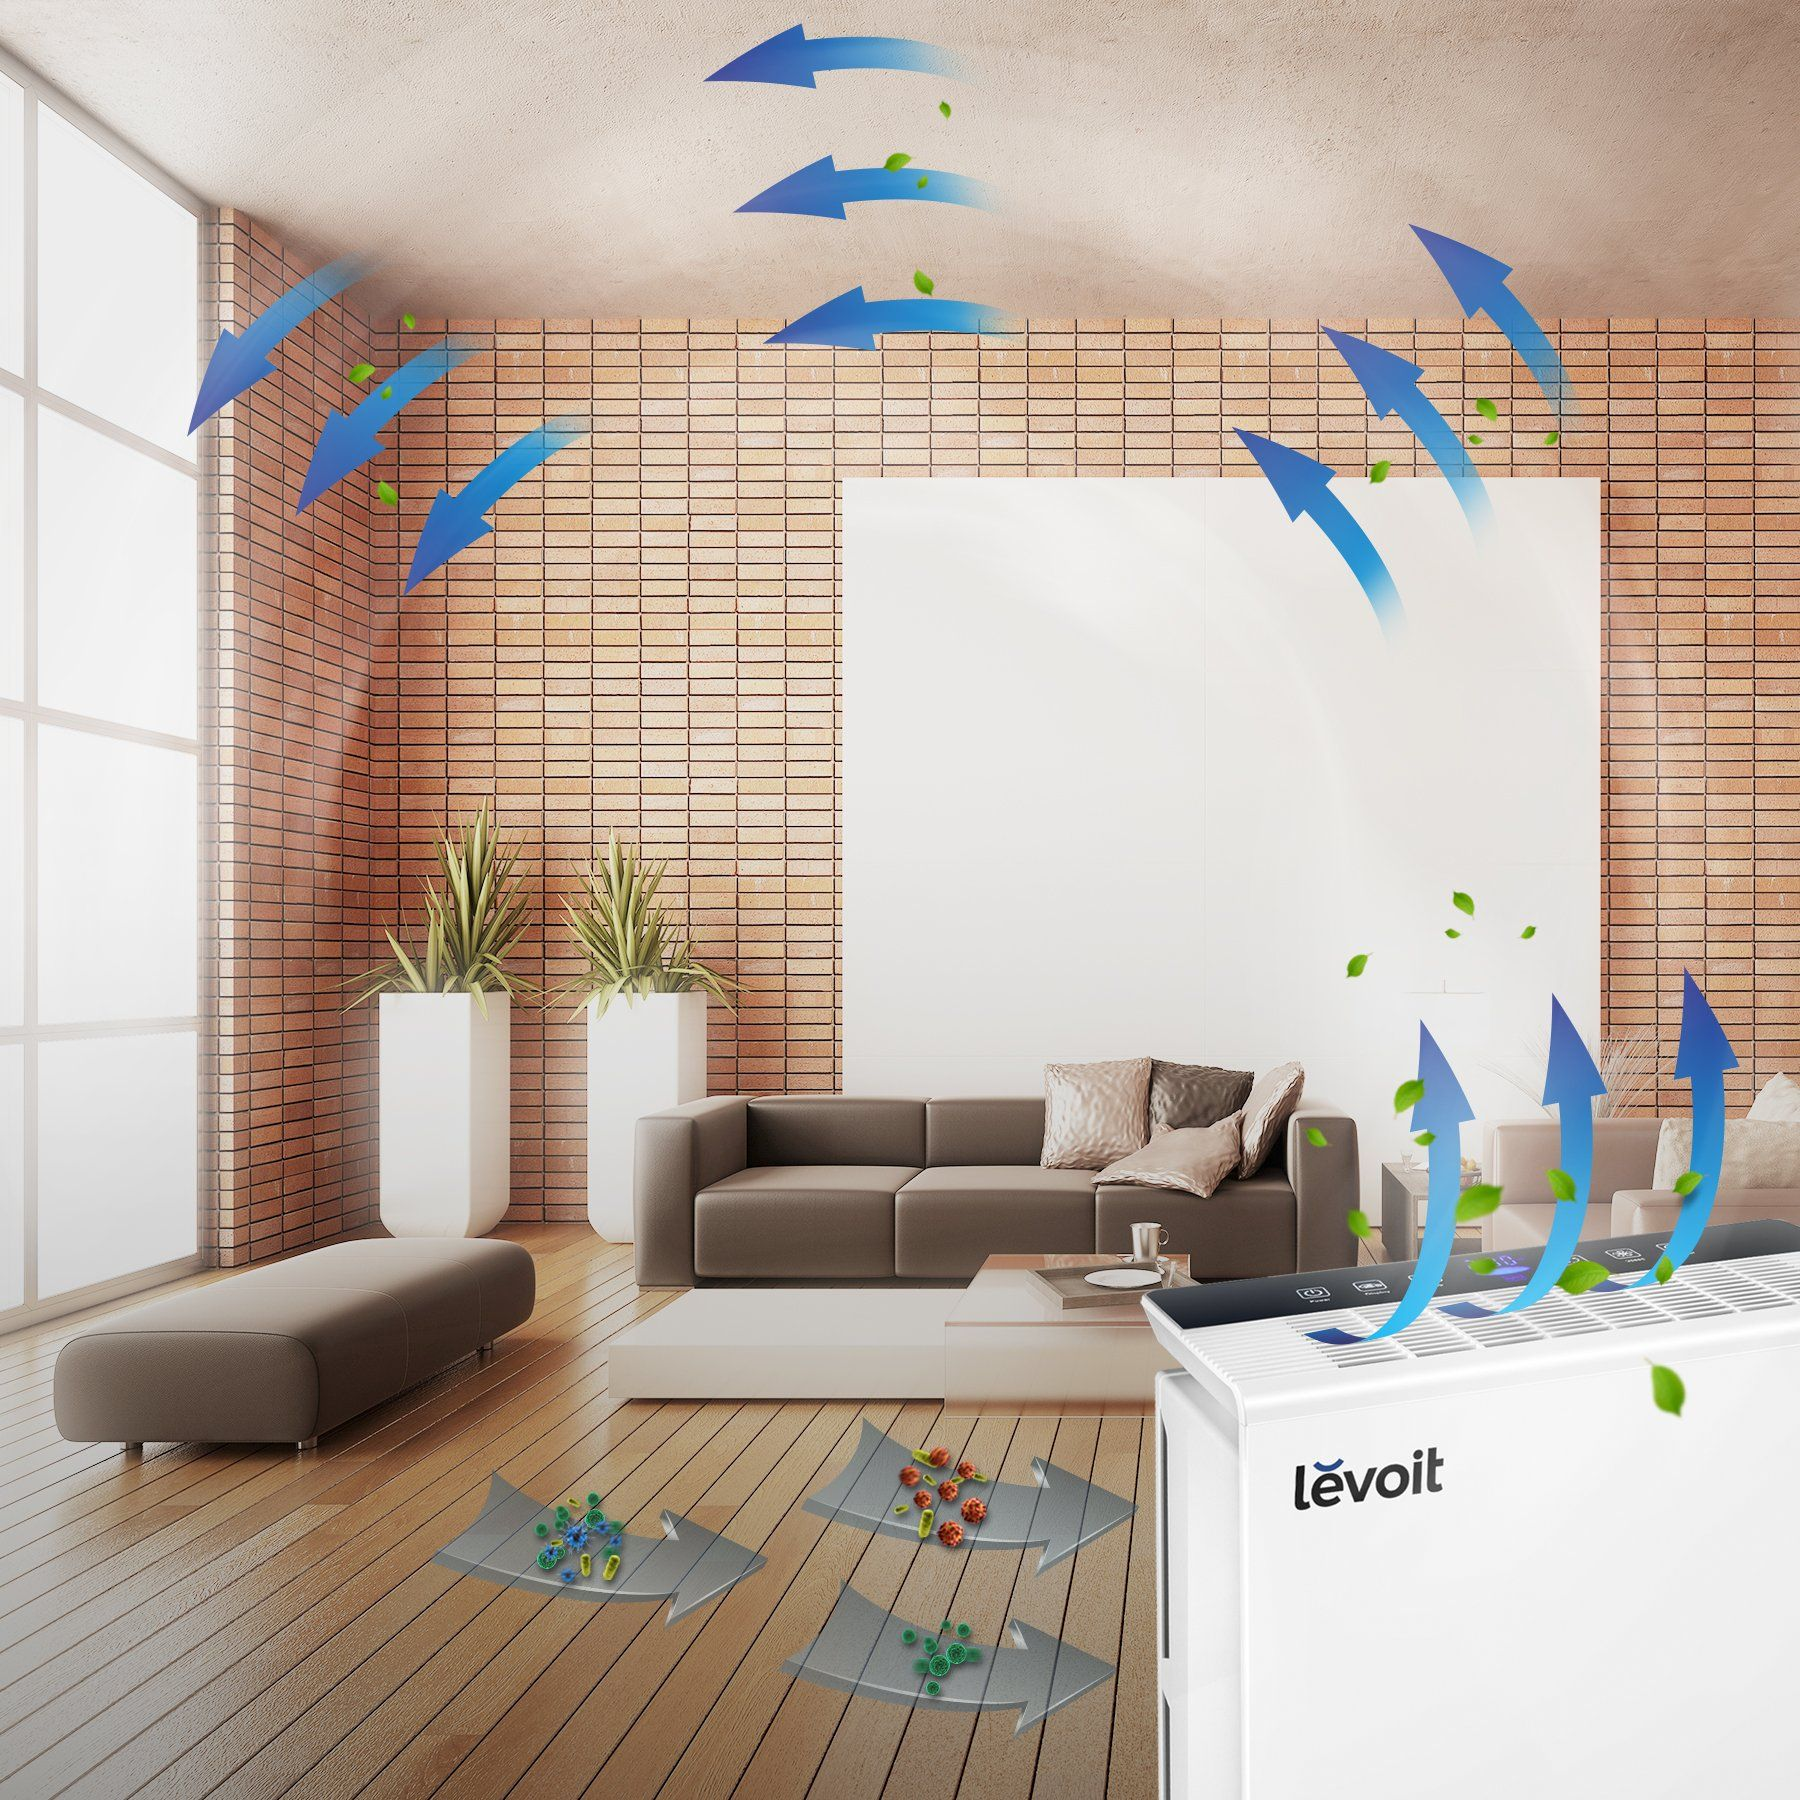 LEVOIT LVPUR131 Air Purifier with True HEPA Filter Odor